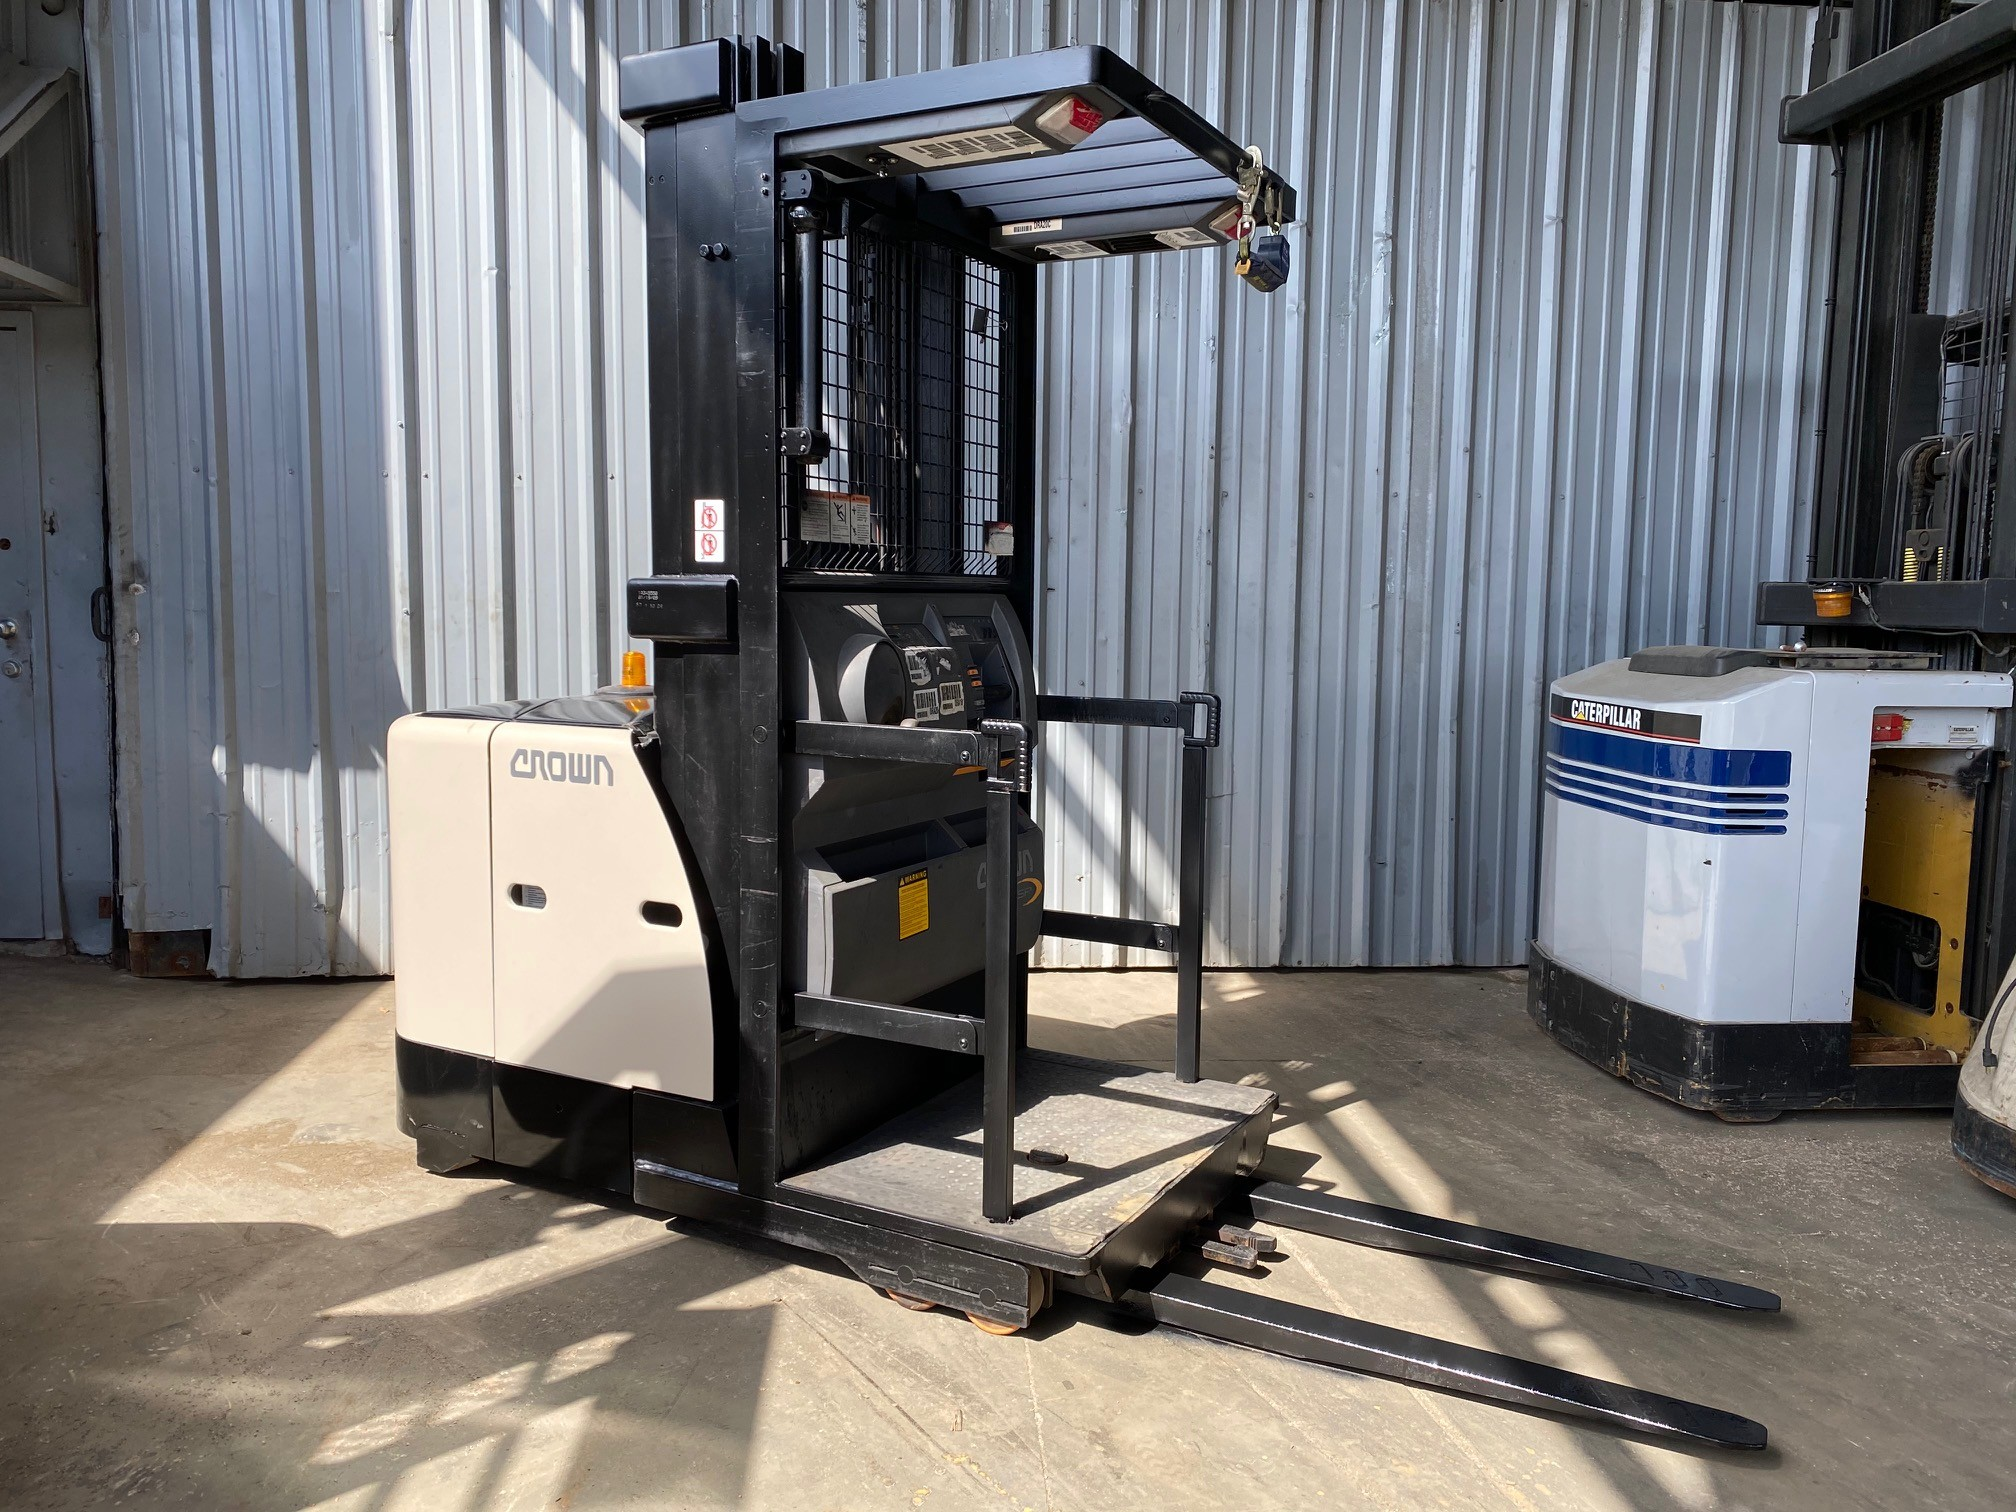 Used, 2009, Crown, SP 3520, Forklifts / Lift Trucks